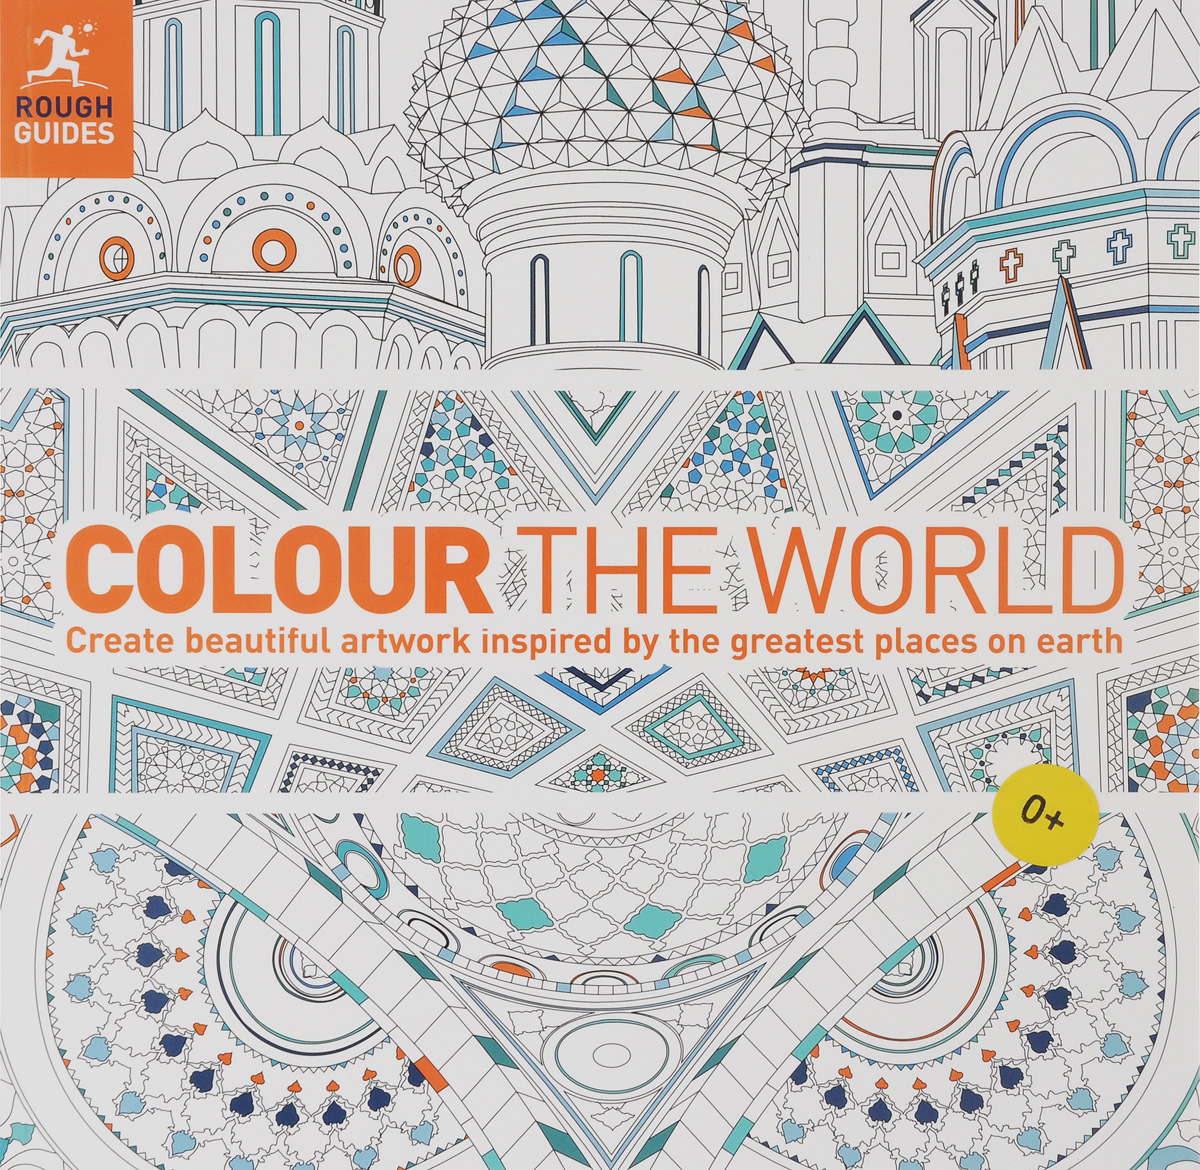 Colour the World: Create beautiful artwork inspired by the greatest places on earth,